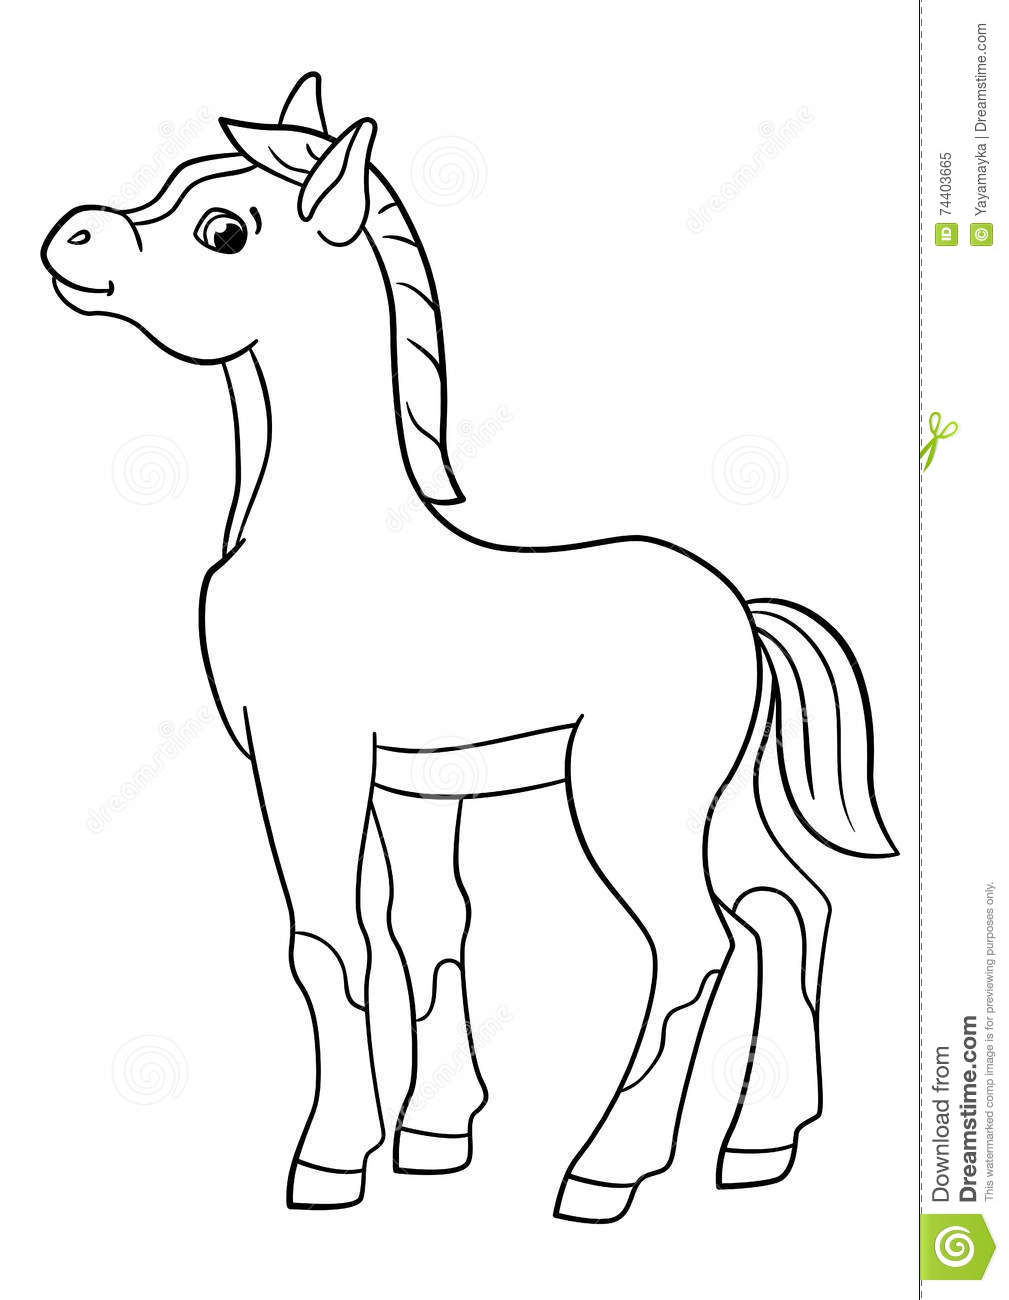 Coloring Pages. Farm Animals. Little Cute Foal. Stock Vector ...